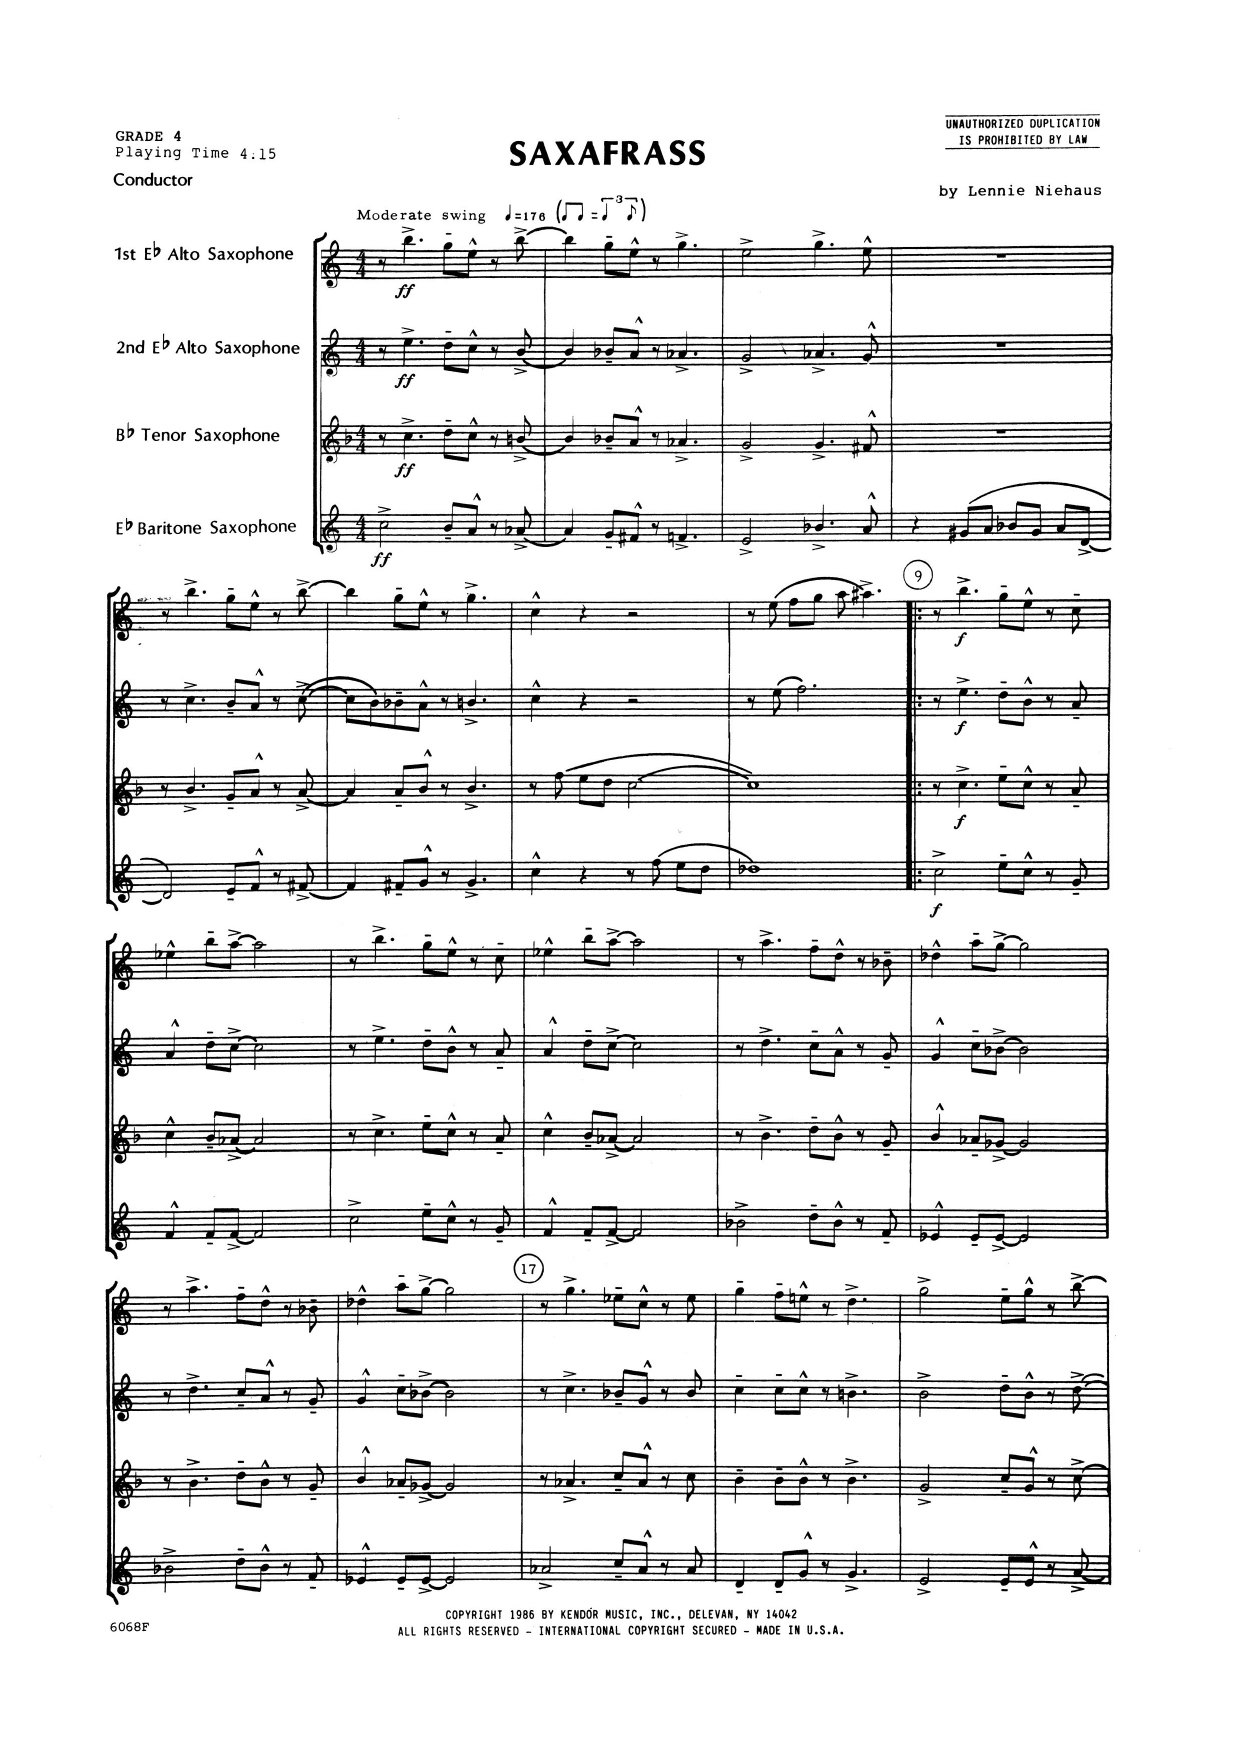 Saxafrass (COMPLETE) sheet music for saxophone quartet by Lennie Niehaus. Score Image Preview.